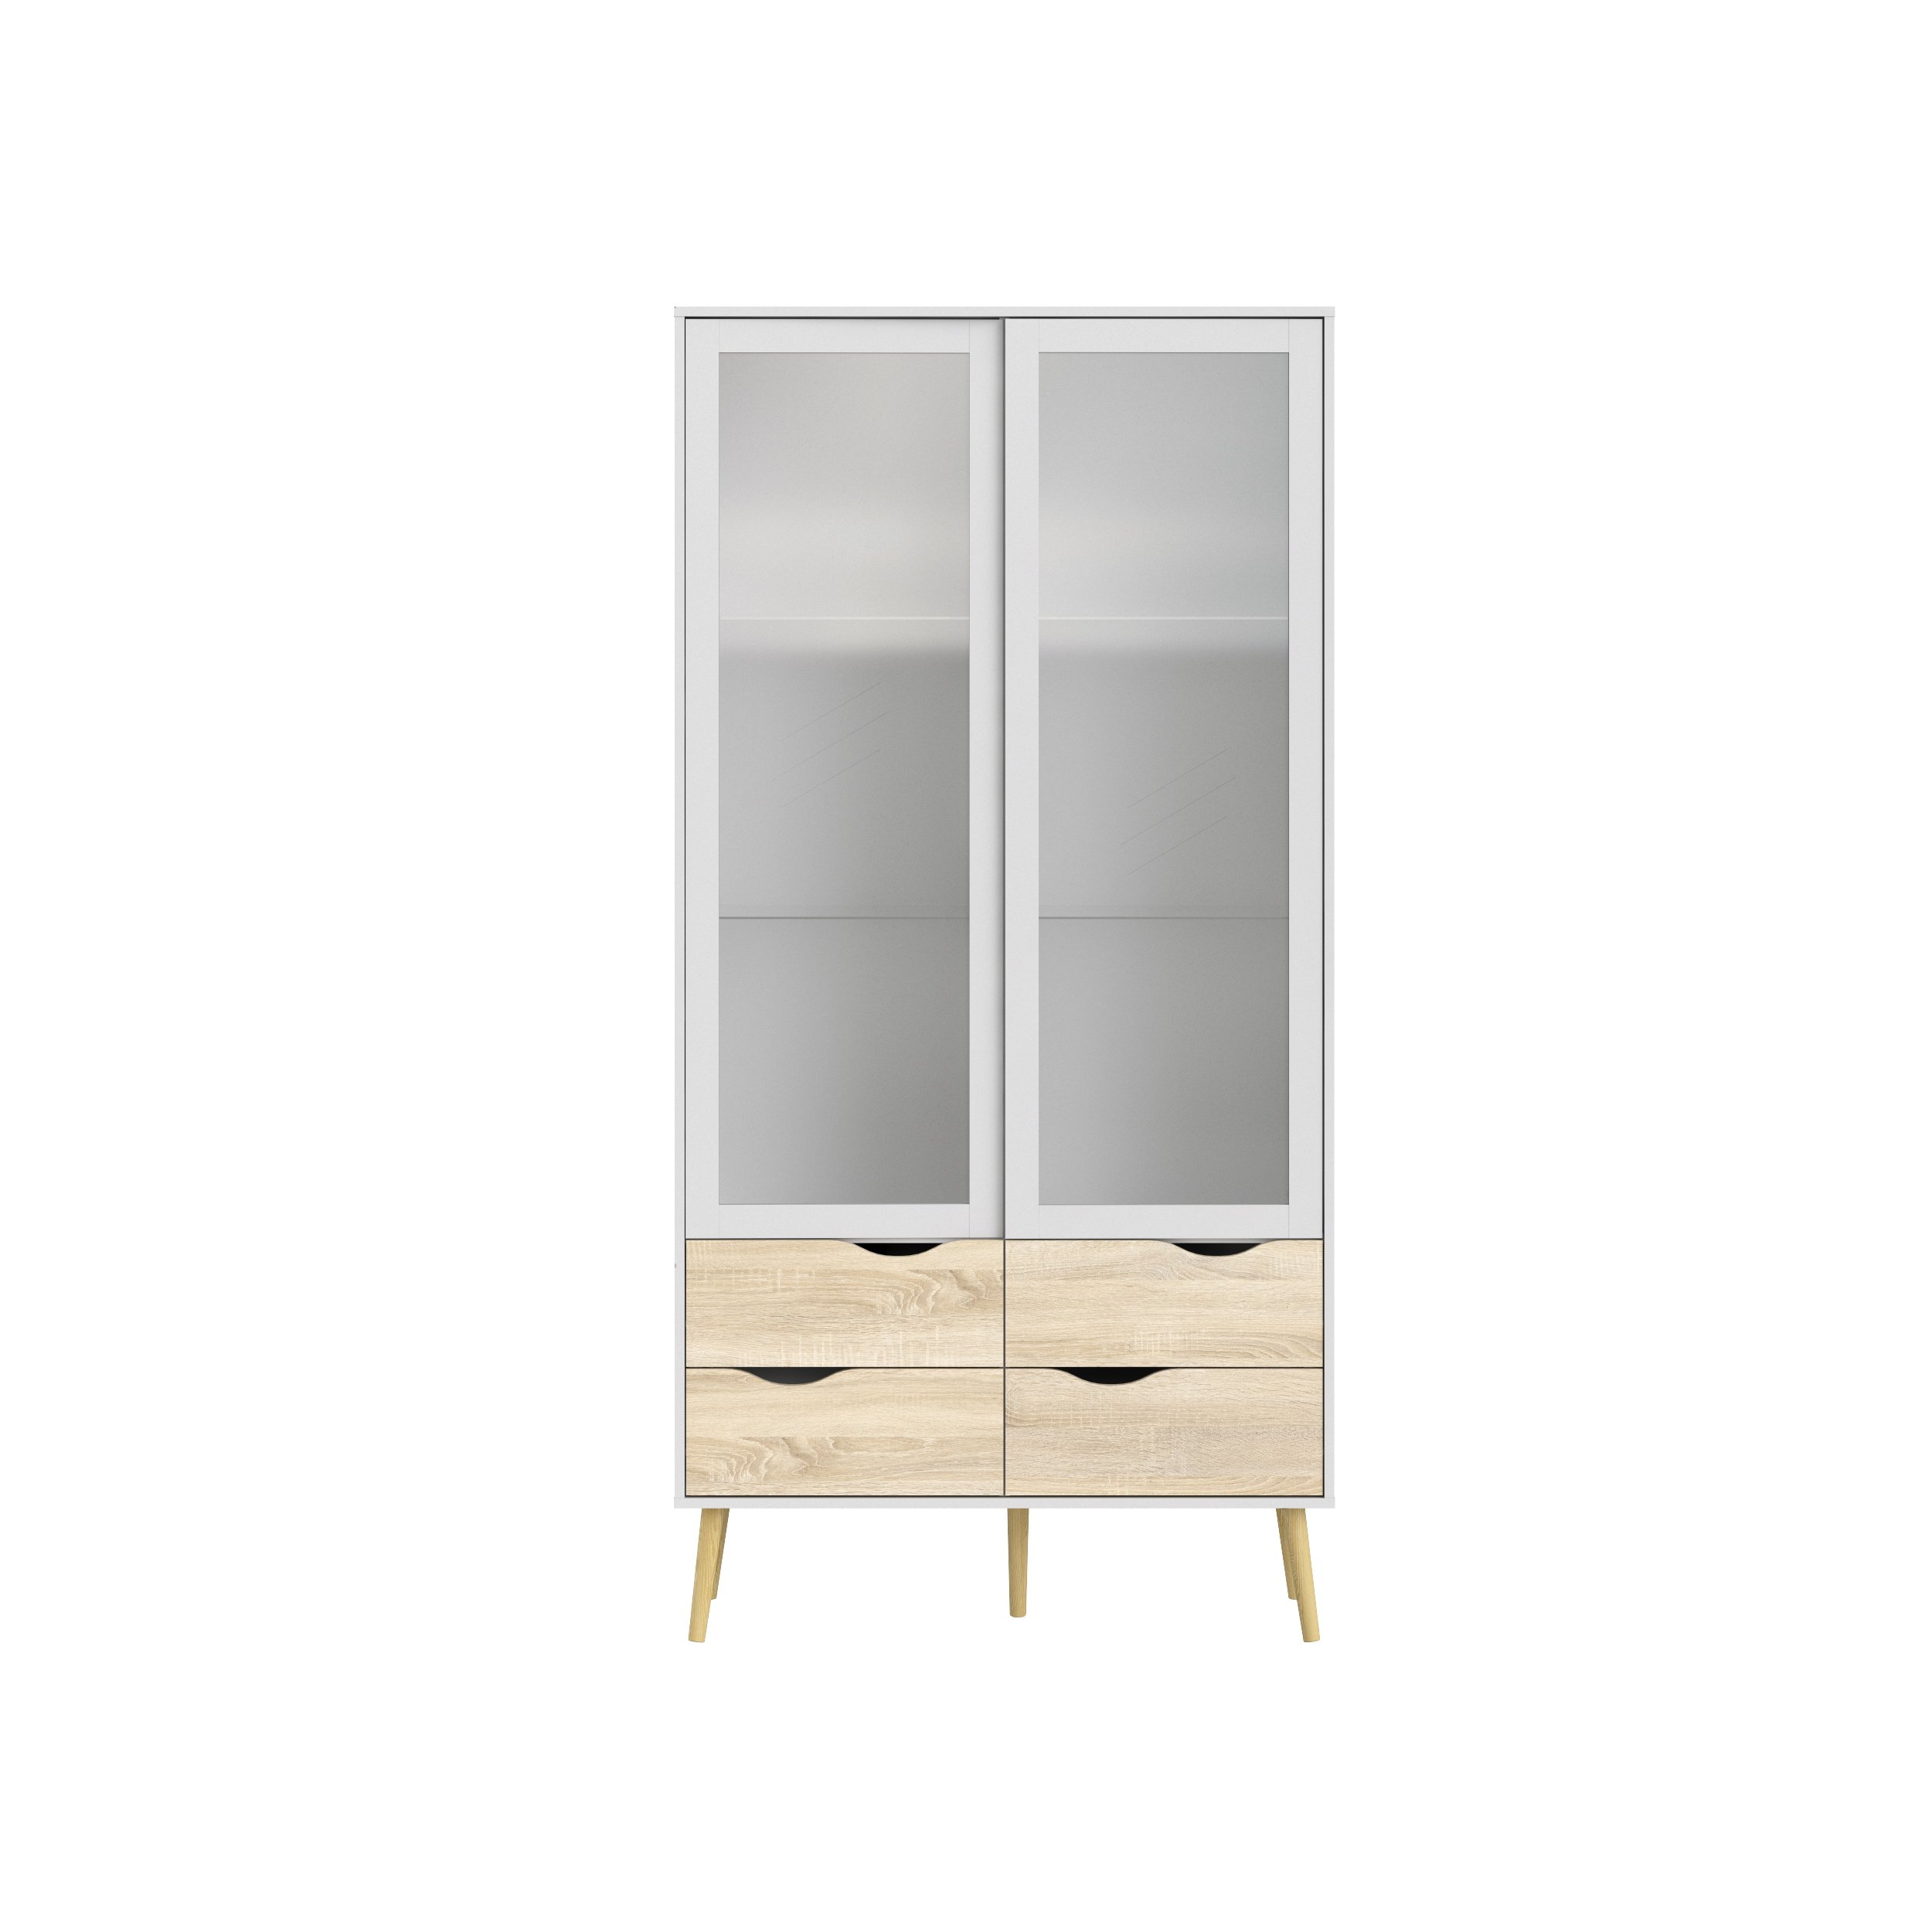 Tvilum 7546249ak Diana 4 Drawer and 2 Door Glass China Cabinet White/Oak Structure